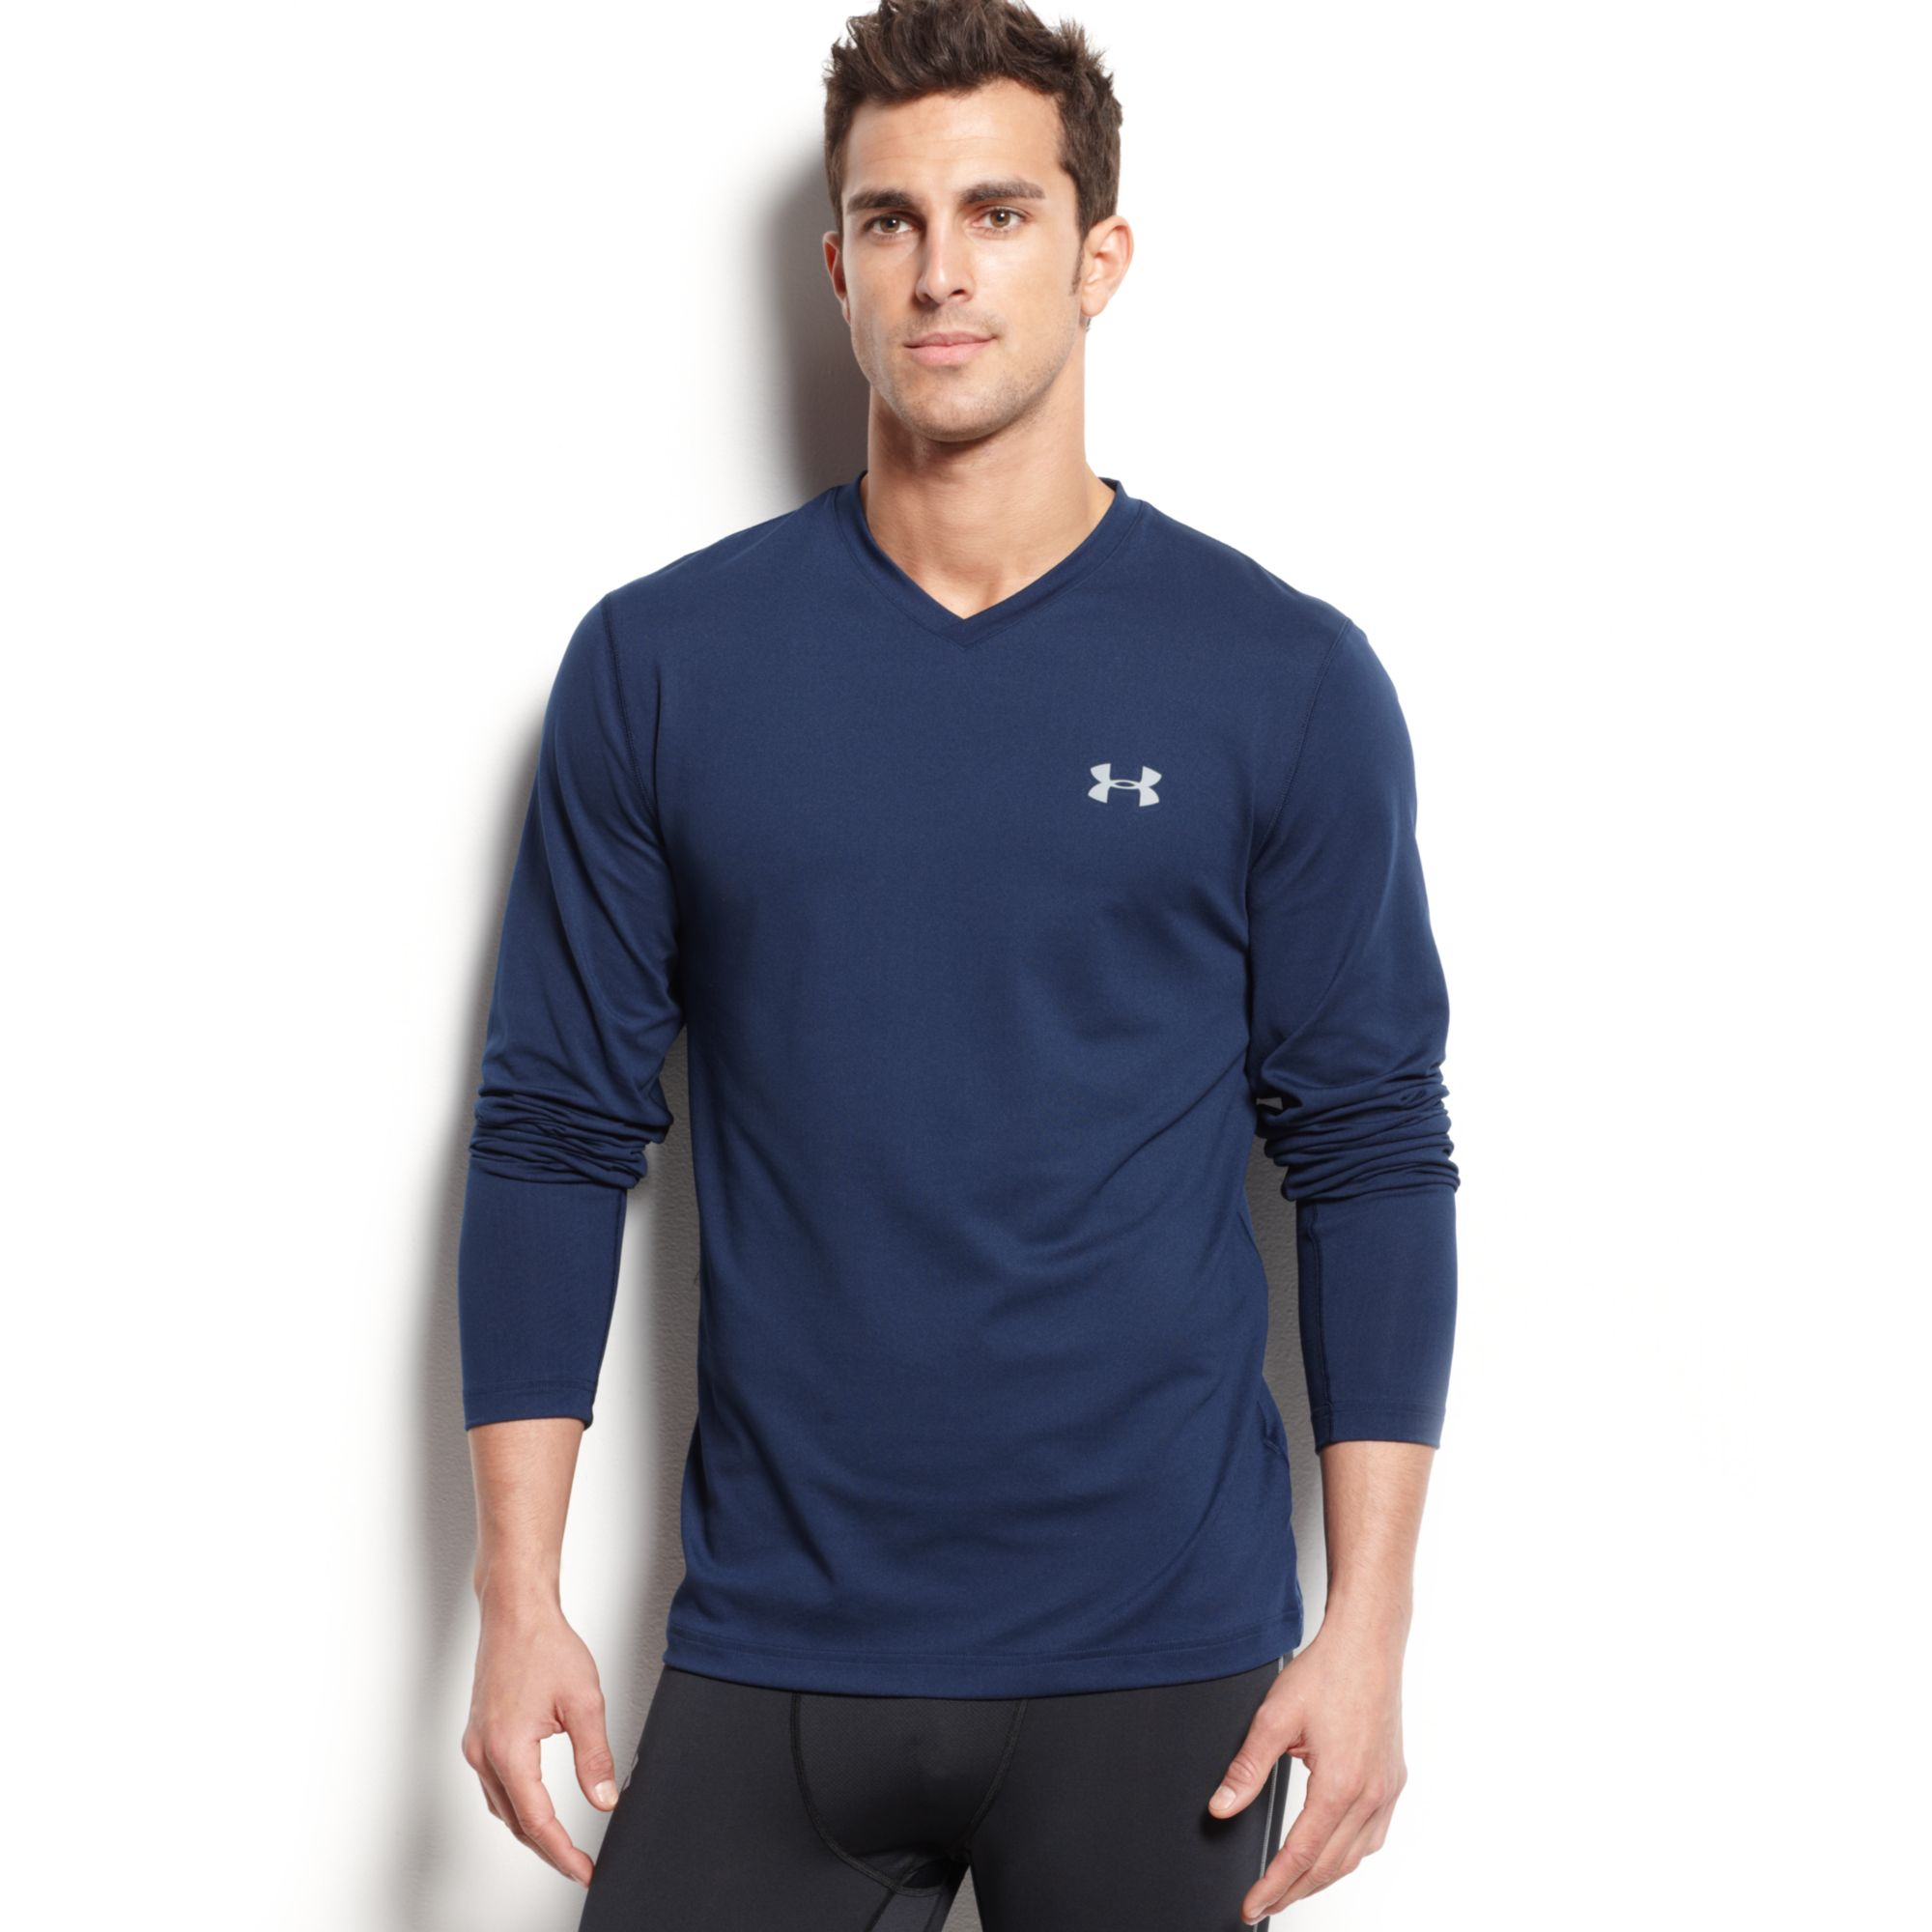 Under armour cold gear infrared v neck long sleeve t shirt for Under armour cold gear shirt mens